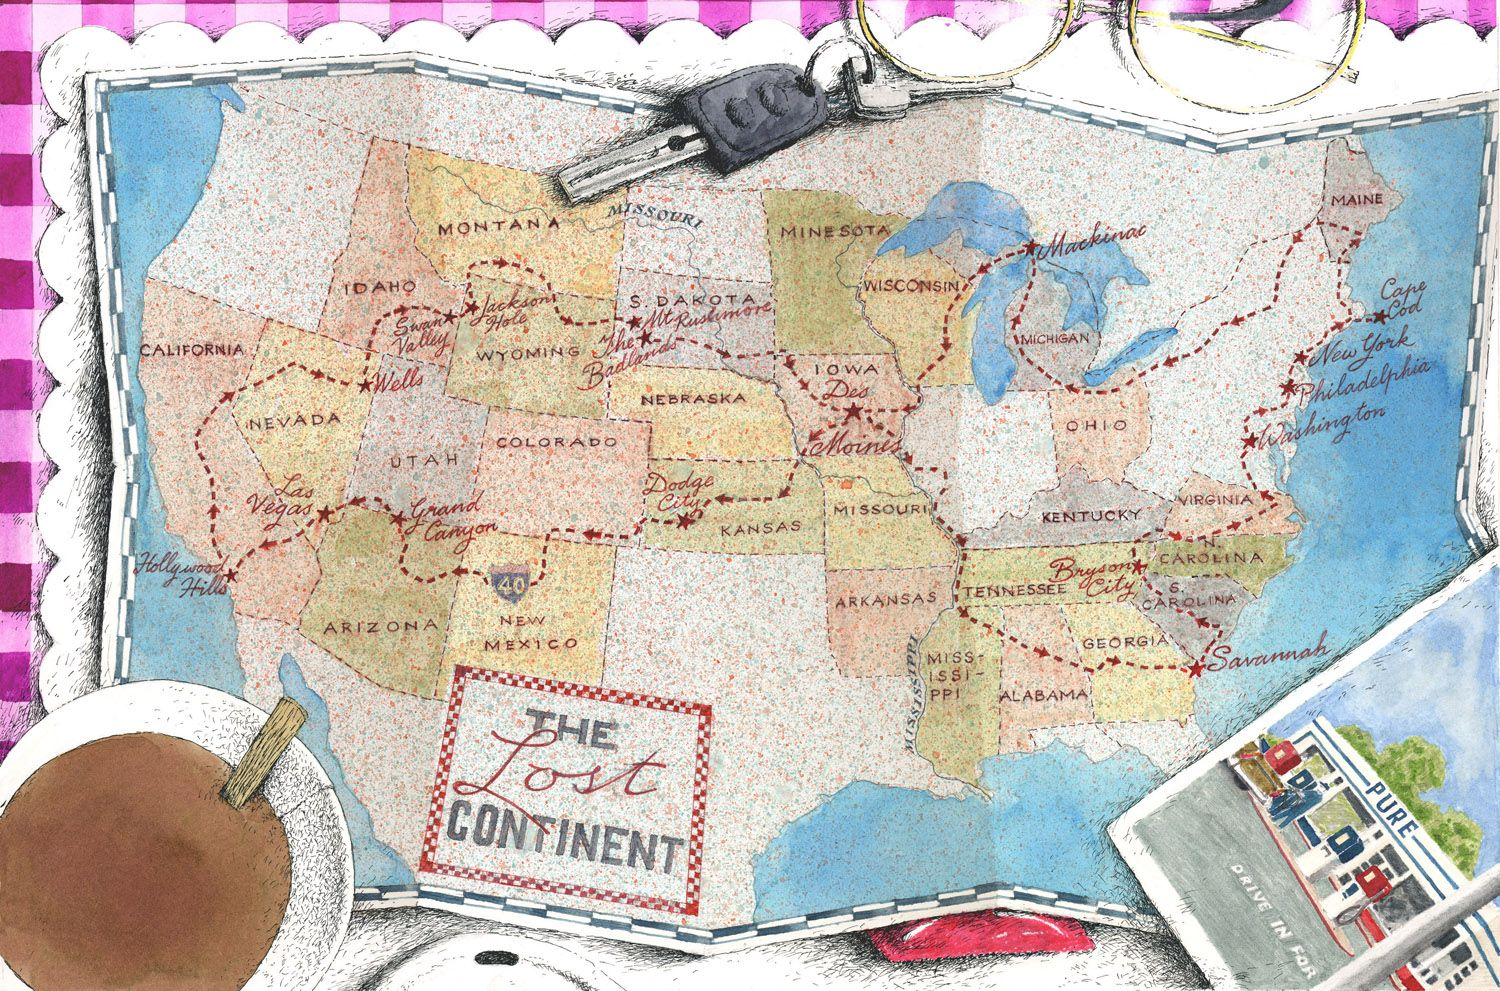 Map Of Us States Bordering Mexico%0A  u    The Lost Continent u     by Bill Bryson   The Folio Society